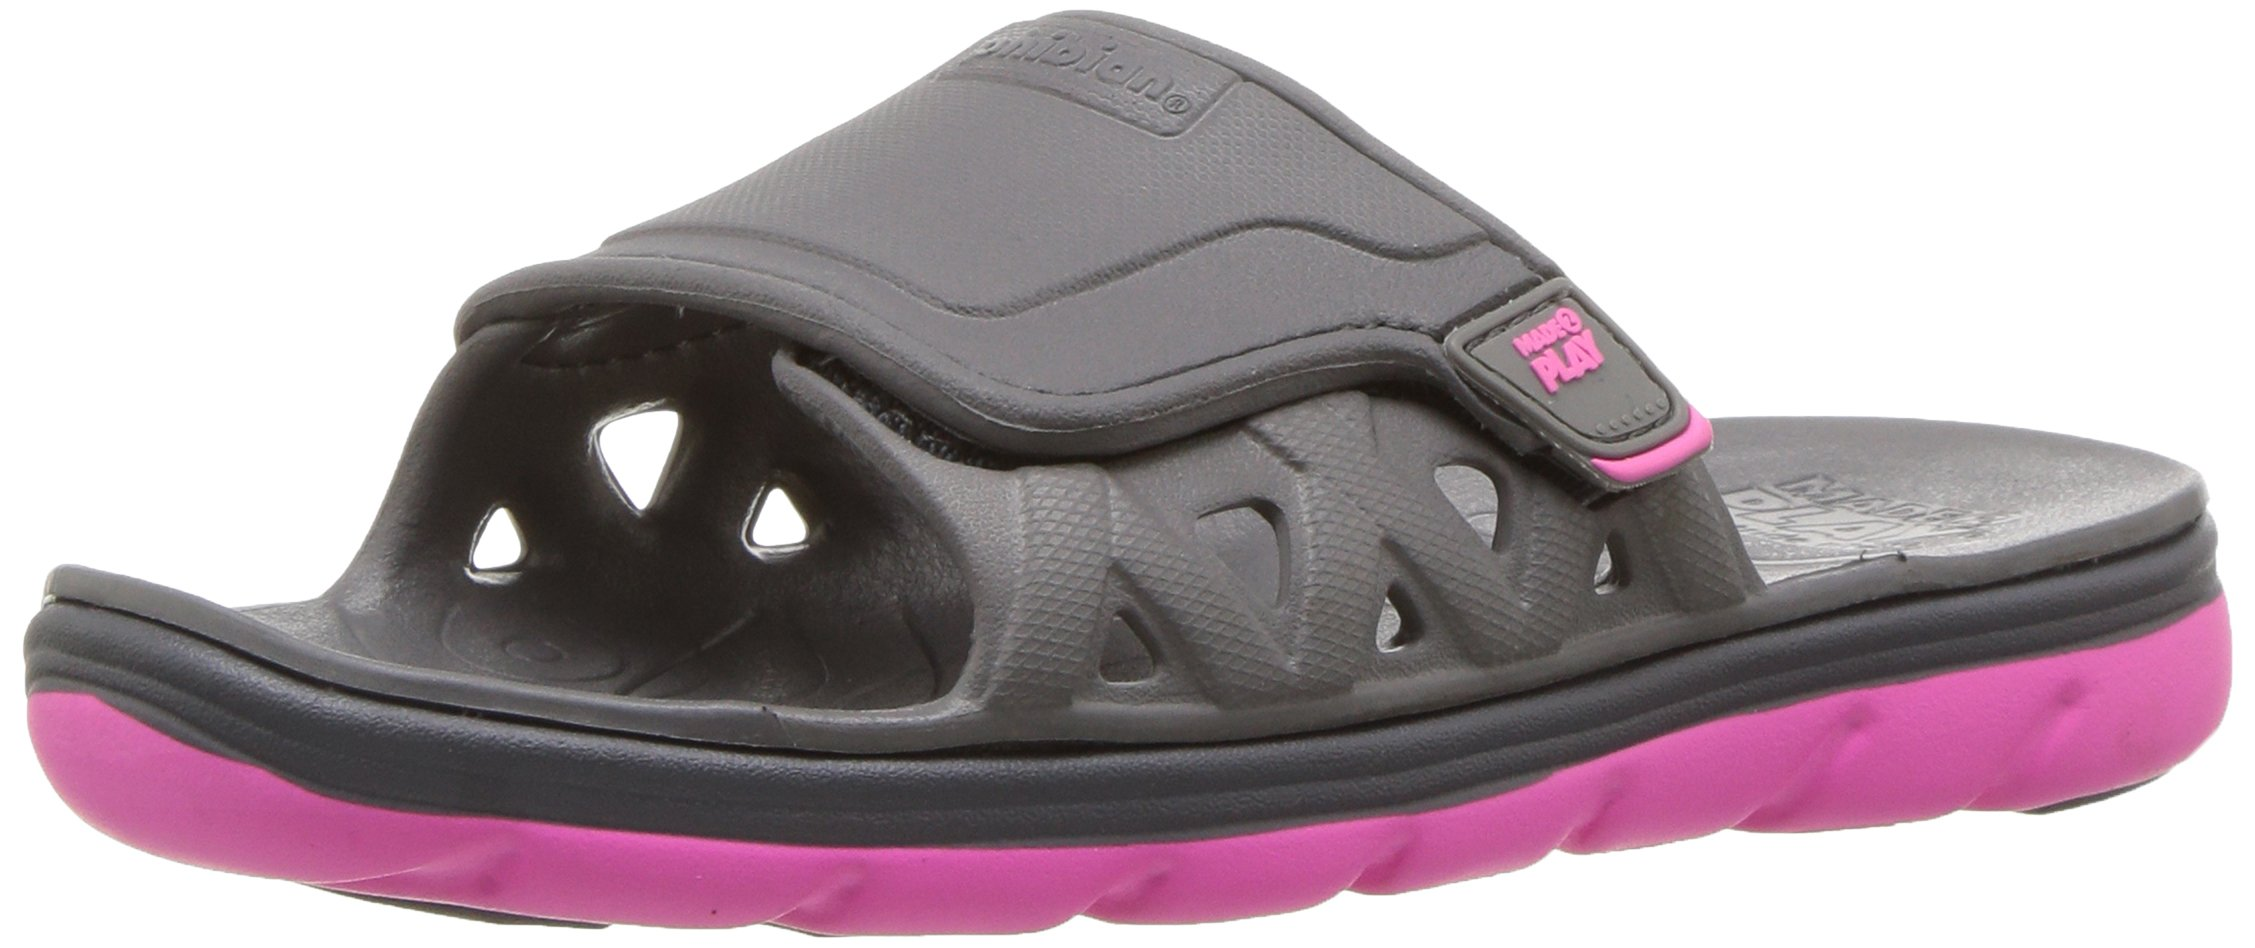 Stride Rite Made 2 Play Phibian Slide Sandal (Toddler/Little Kid/Big Kid), Grey/Pink, 2 M US Little Kid